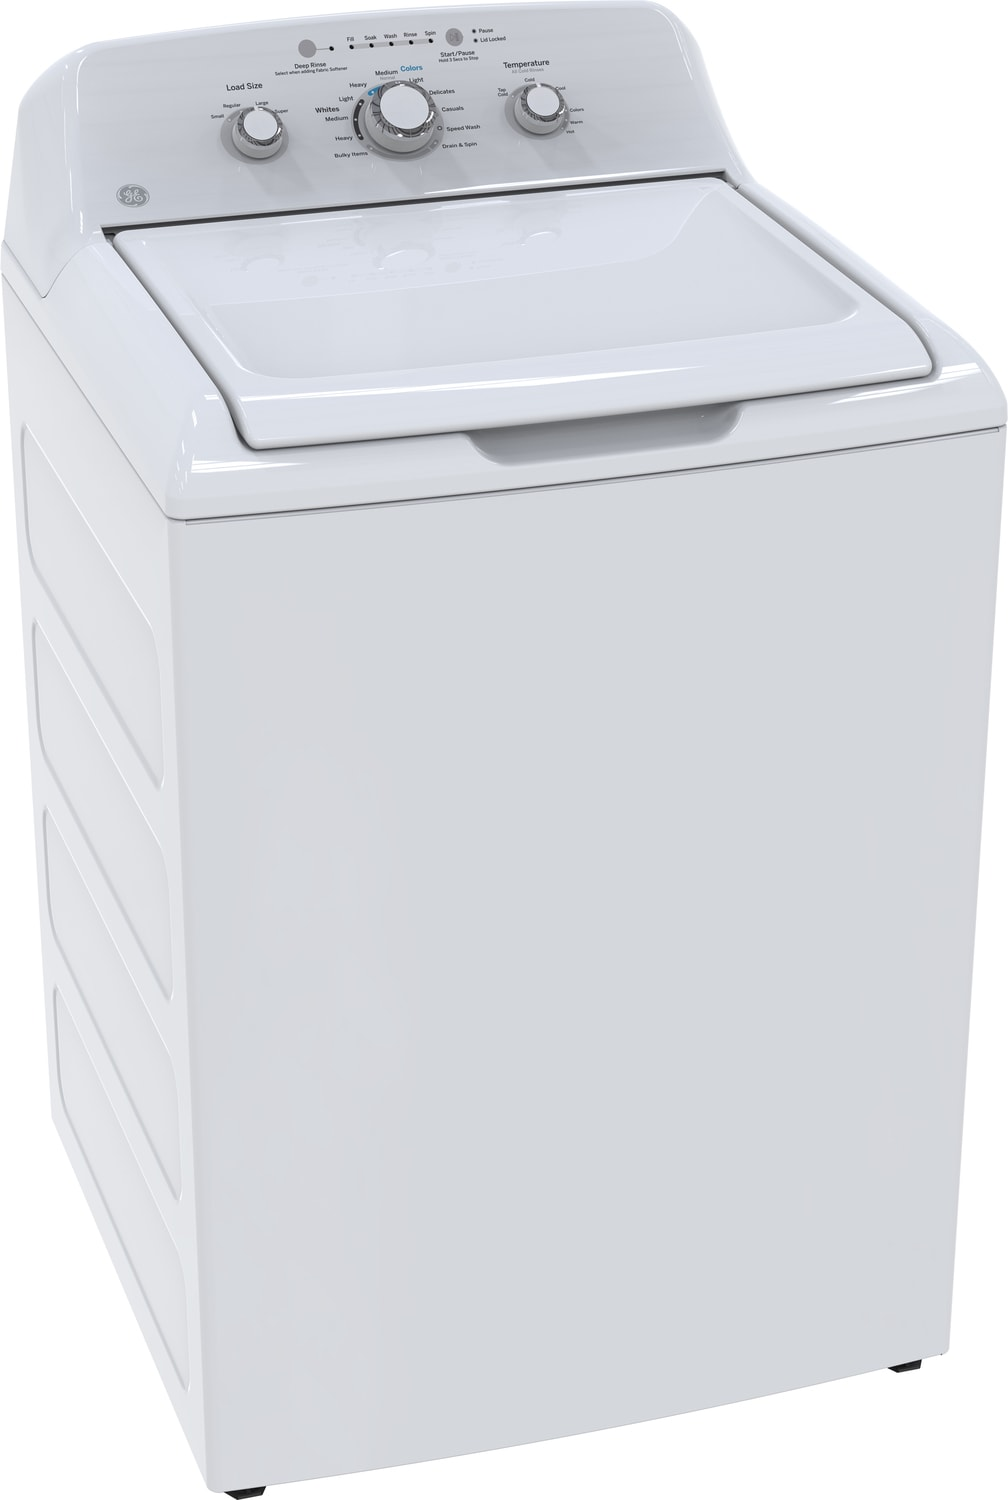 GE White Top-Load Washer (4.4 Cu. Ft. IEC) - GTW330BMKWW